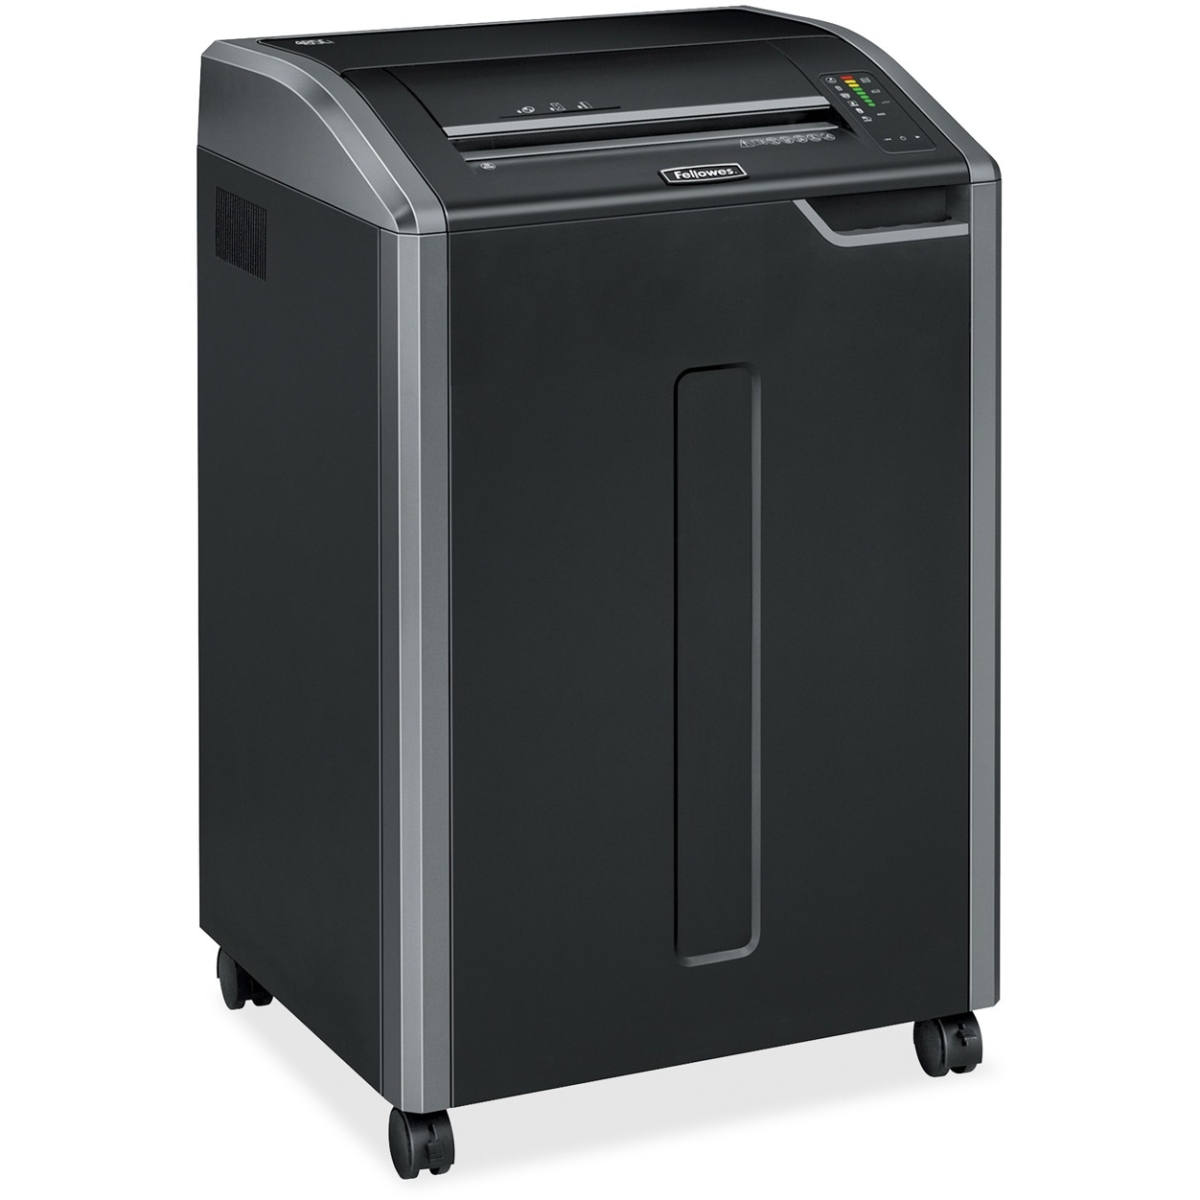 Powershred 485Ci 100% Jam Proof Cross-Cut Shredder - Continuously shreds 30 sheets of paper per pass into 5/32 x 1-? ? (Security Level P-4) particles - 35-gallon bin (HW No Free Freight)